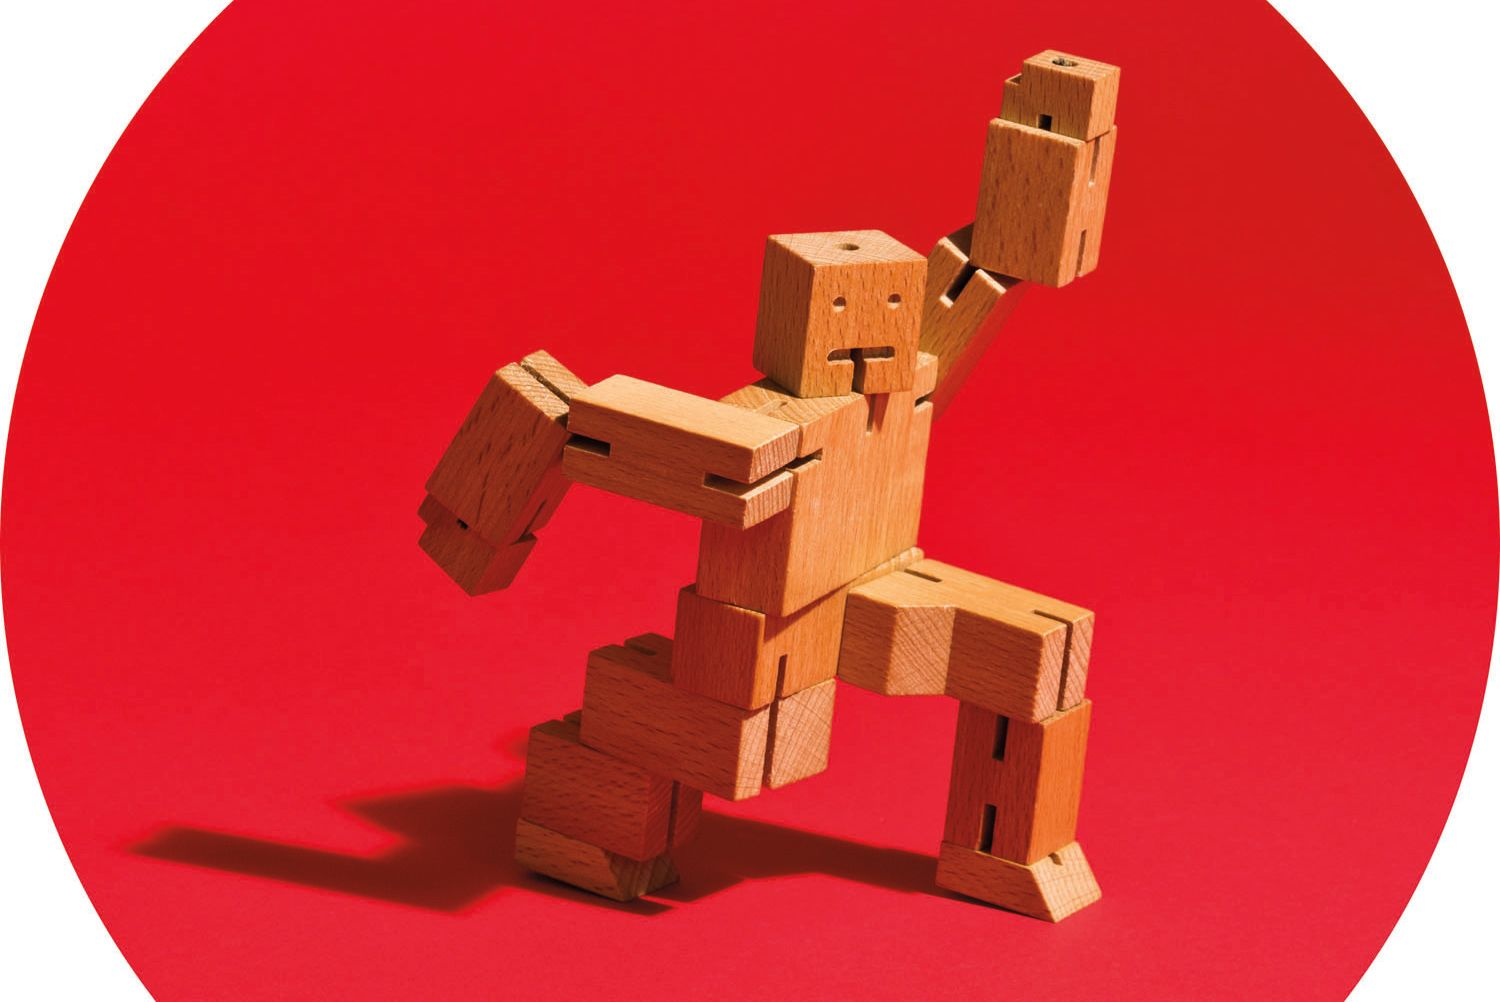 Pomo 1216 gift guide cubebot puzzle aztg0o